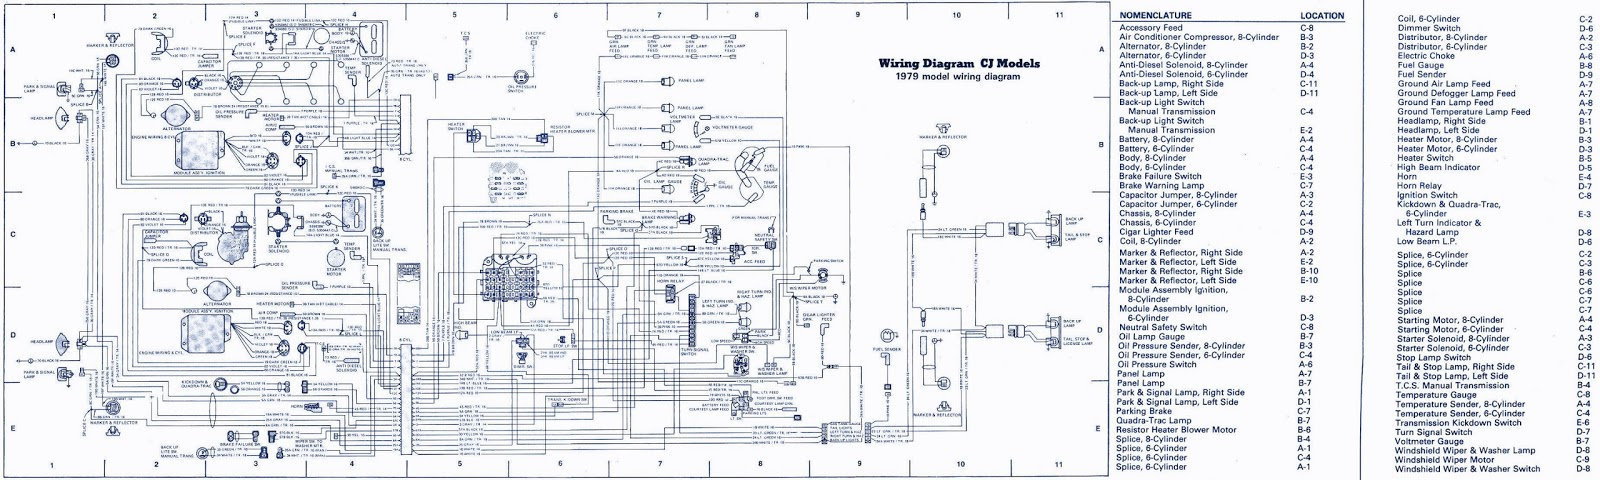 Yj 350 Conversion Wiring Diagram | #1 Wiring Diagram Source